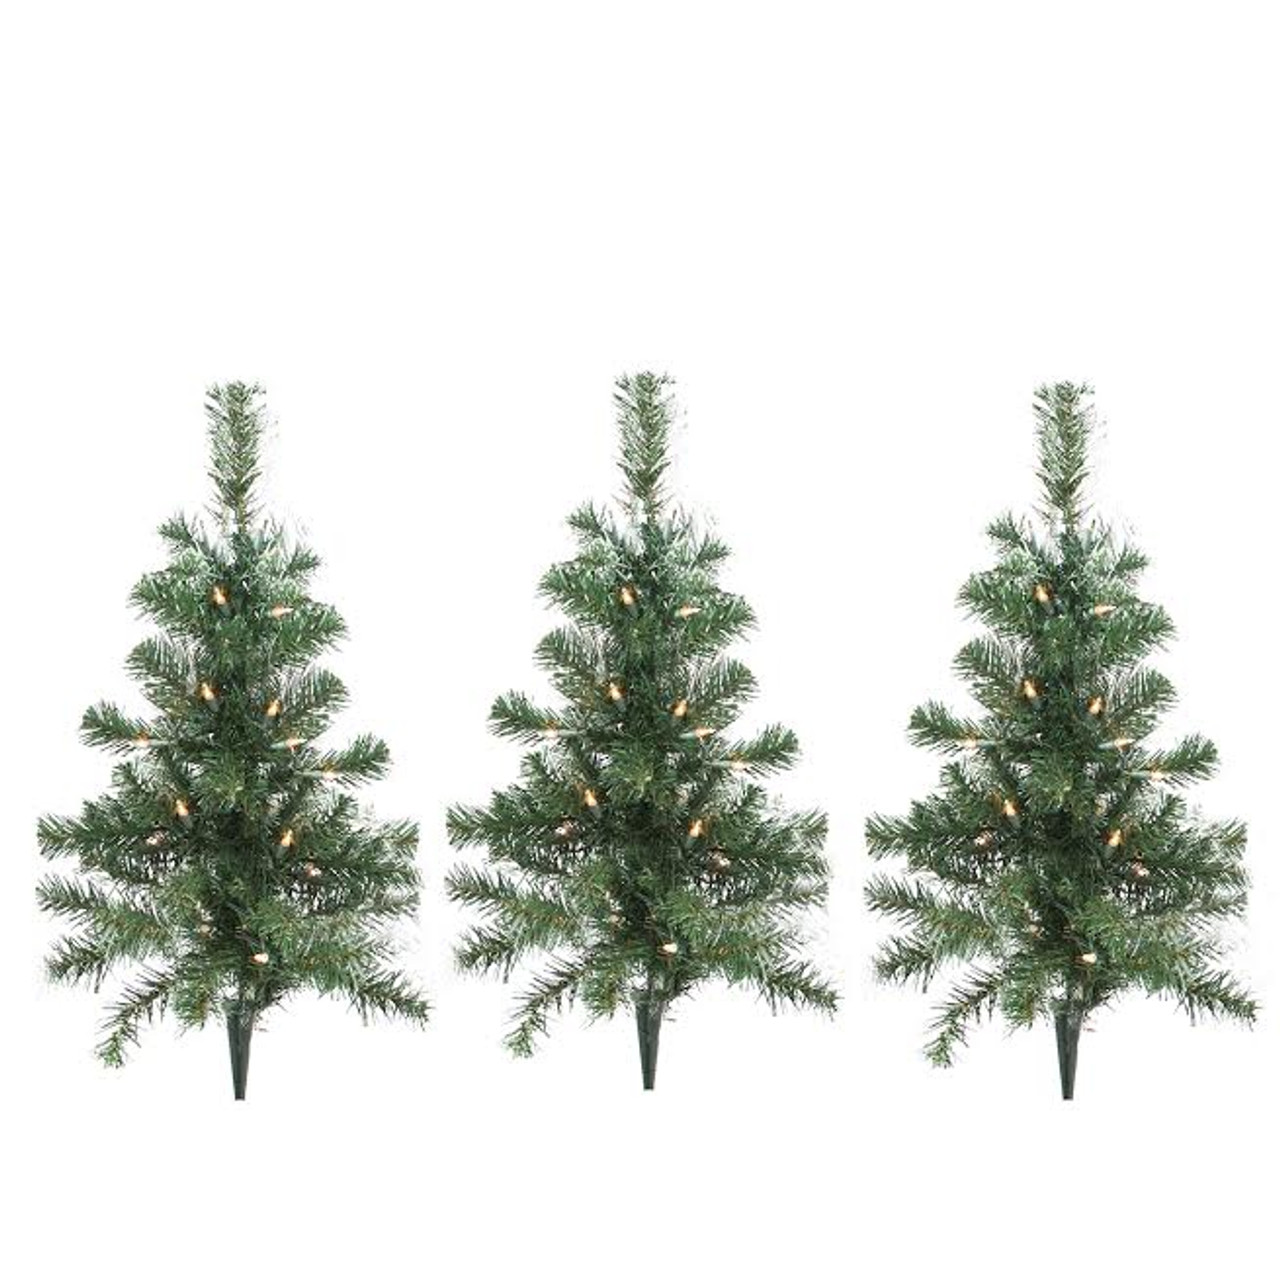 pack of 3 lighted christmas tree driveway or pathway markers outdoor christmas decorations 31481164 - Lighted Christmas Tree Lawn Decoration